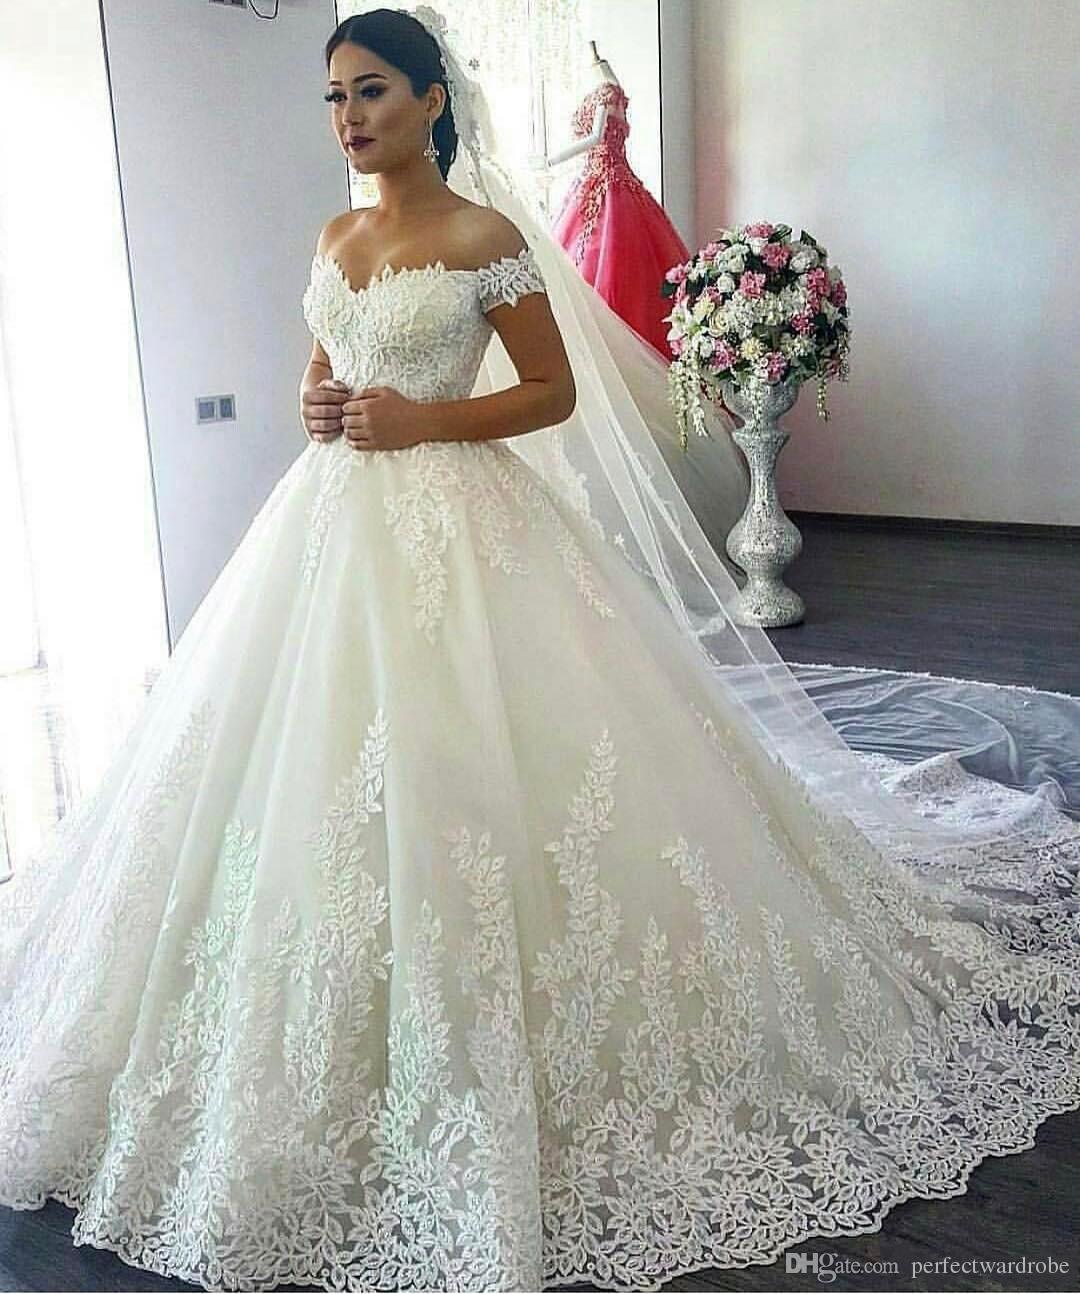 Beautiful arabic wedding dresses 2017 designers off shoulder cap beautiful arabic wedding dresses 2017 designers off shoulder cap sleeve beaded lace lvory wedding dress long train gowns vestido de noiva 2018 from junglespirit Gallery